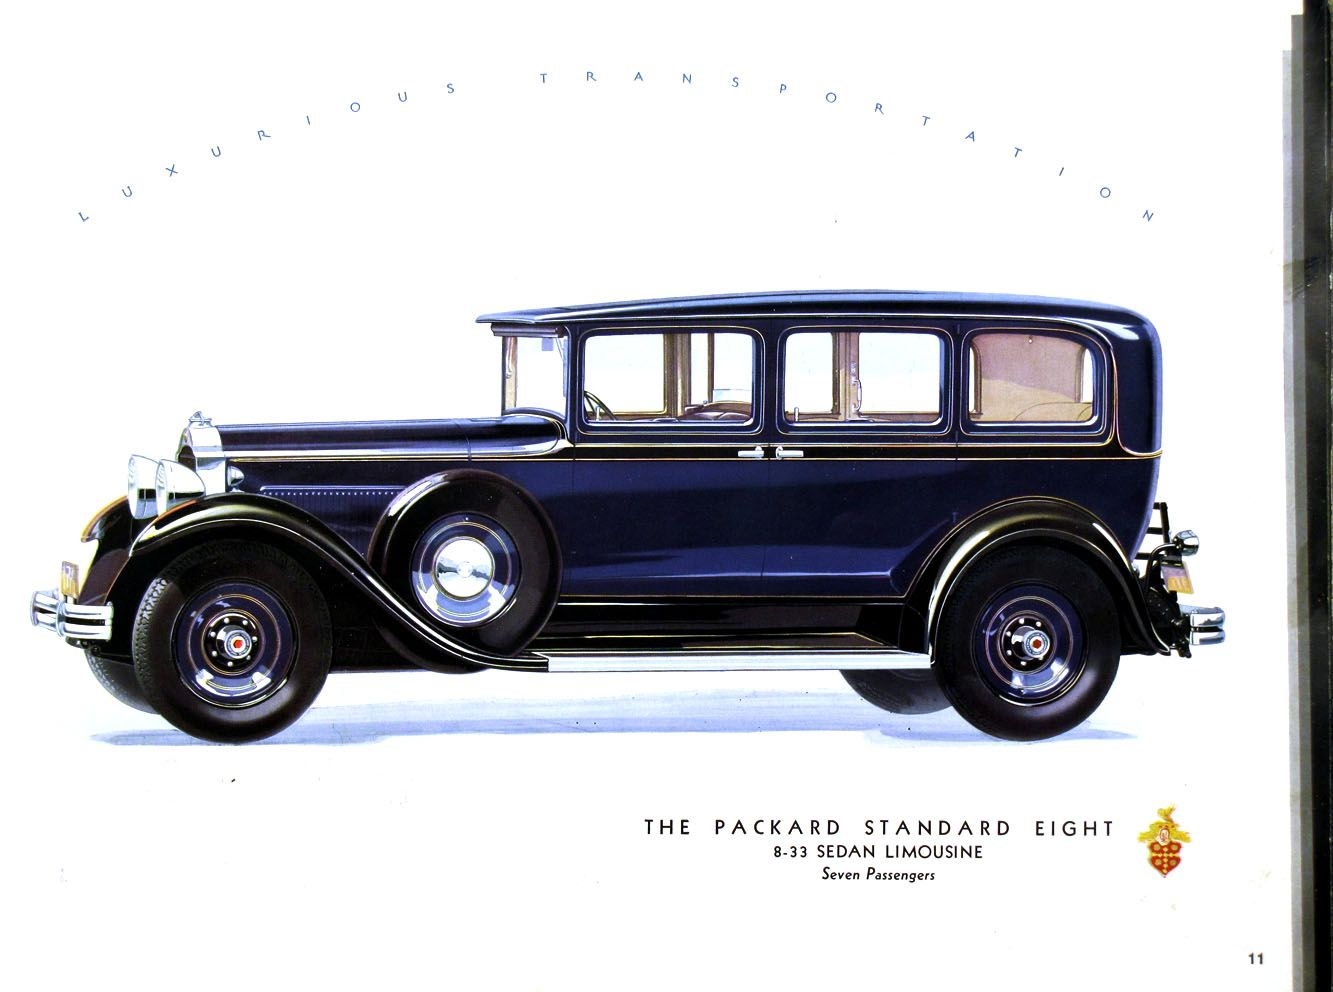 1931 packard standard eight 8 33 sedan limousine